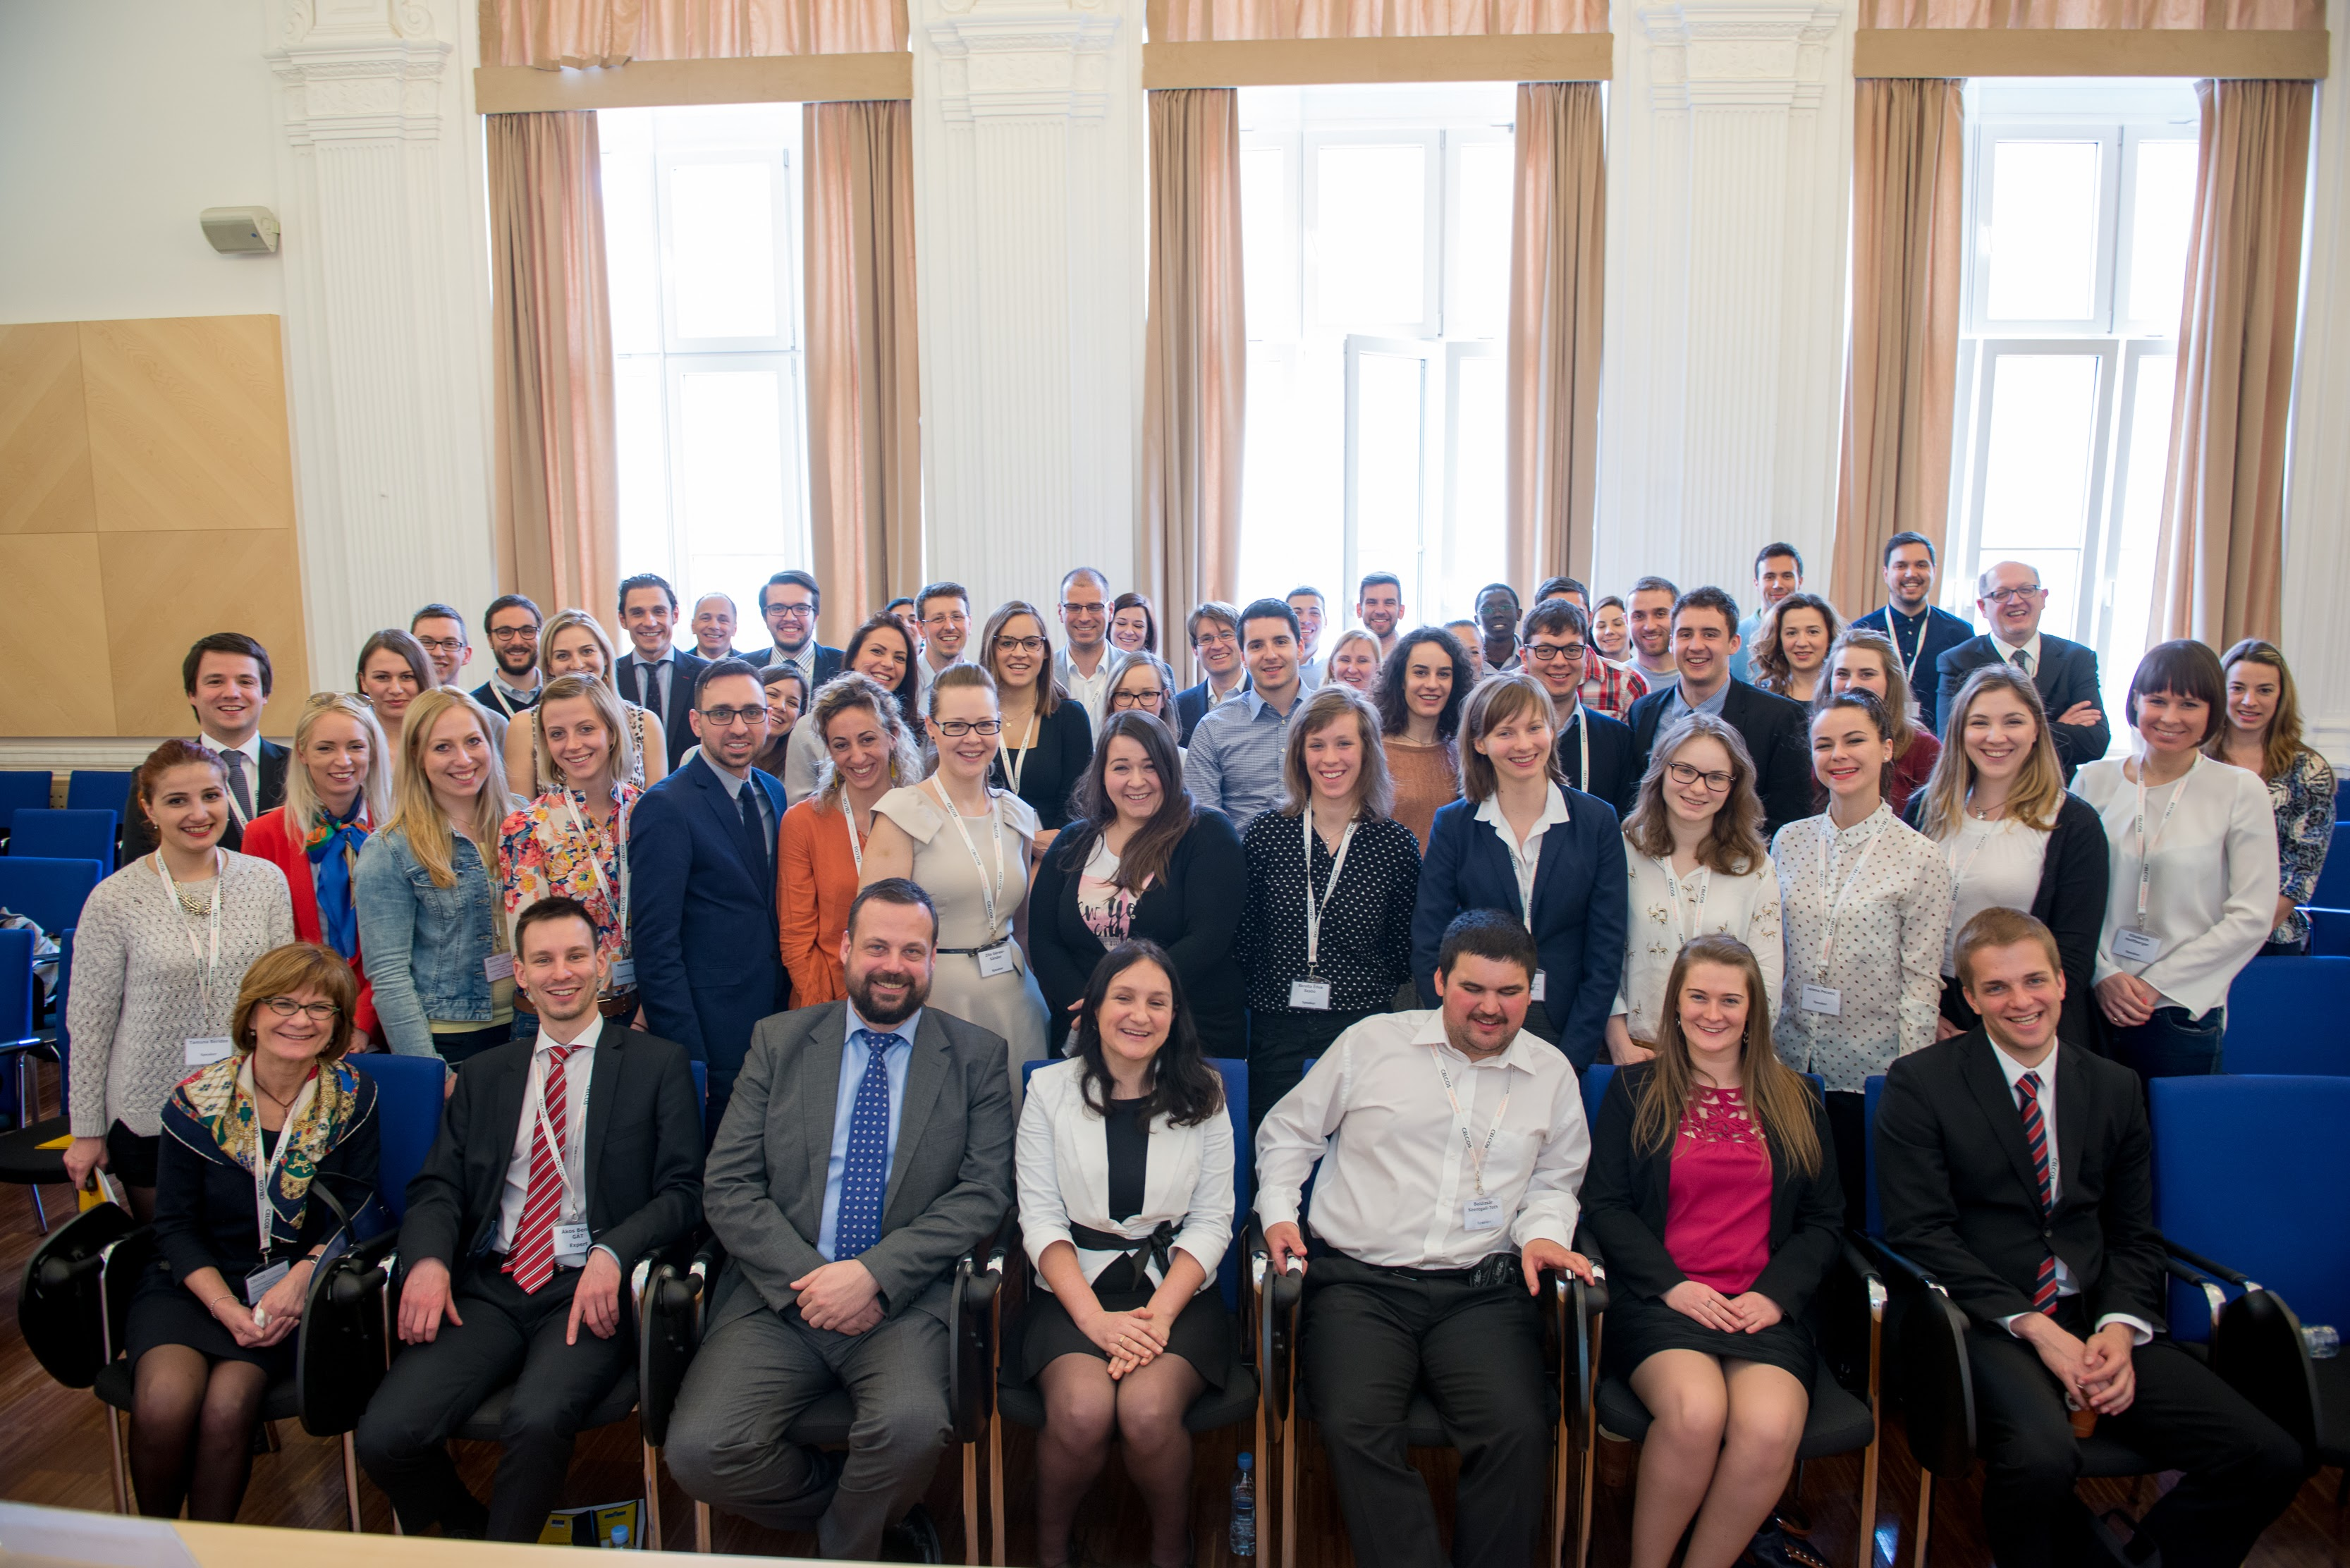 Dupont Moretti Cabinet Organiser Of The Central European Law Conference For Students